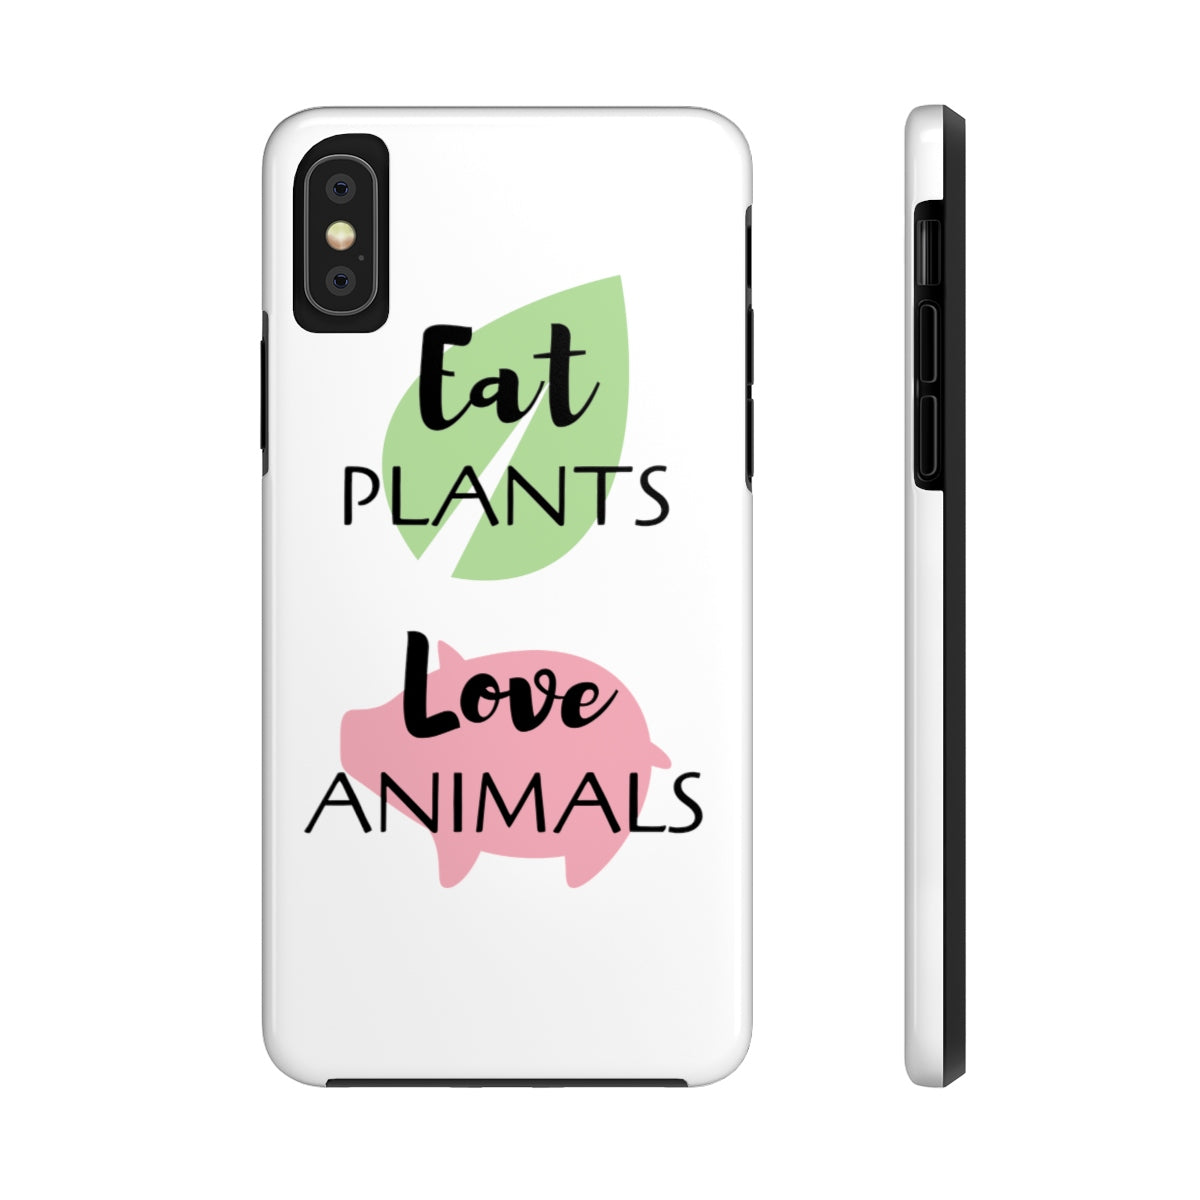 Eat Plants Love Animals Tough Phone Case